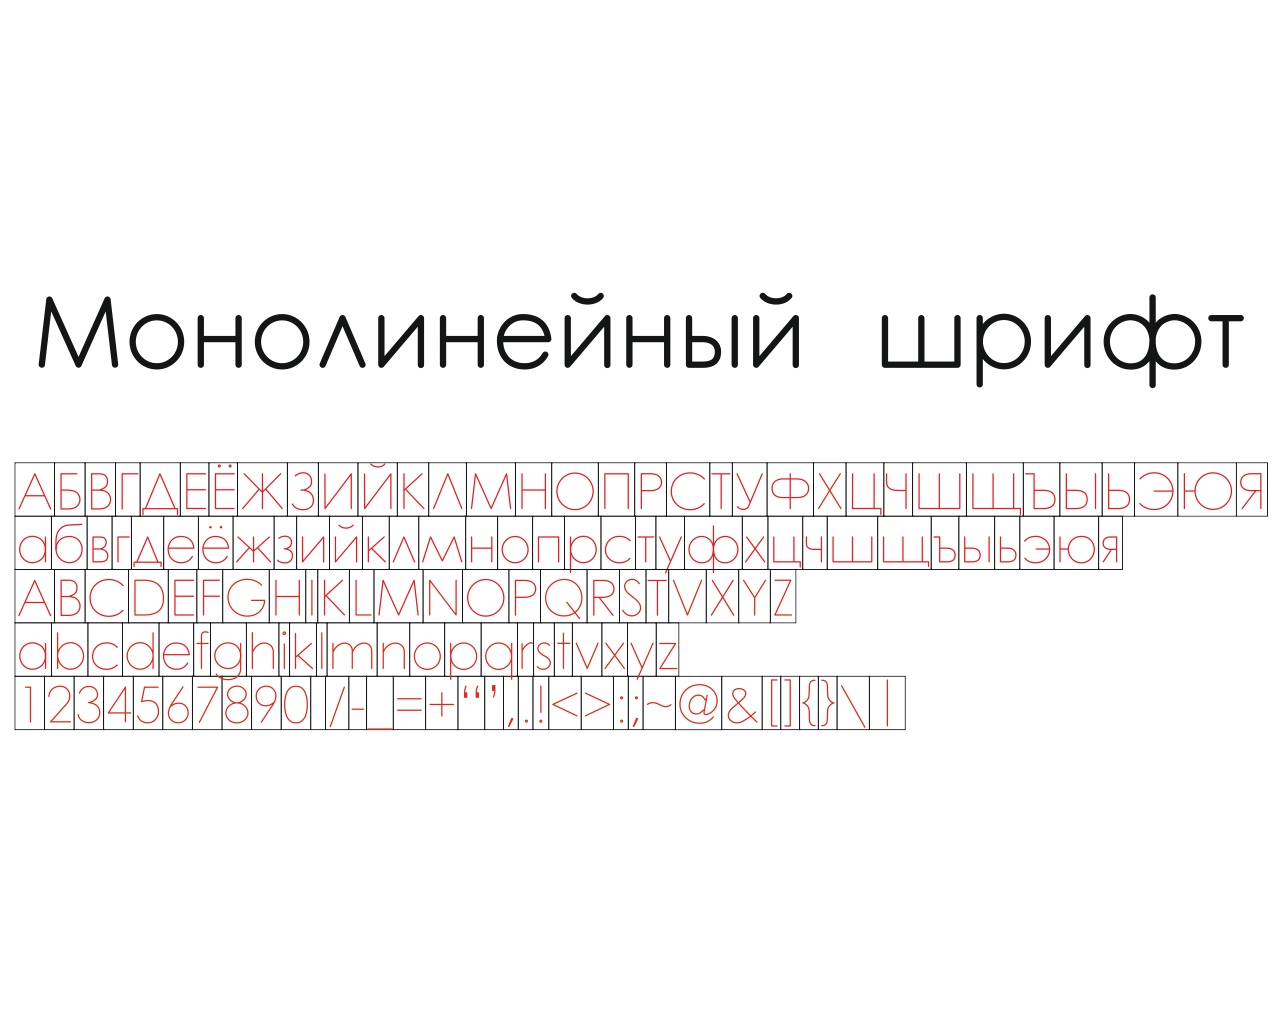 Laser Engraving Mono Font Cyrillic Font Russian Alphabet Letters Numbers Punctuation Signs Free Vector